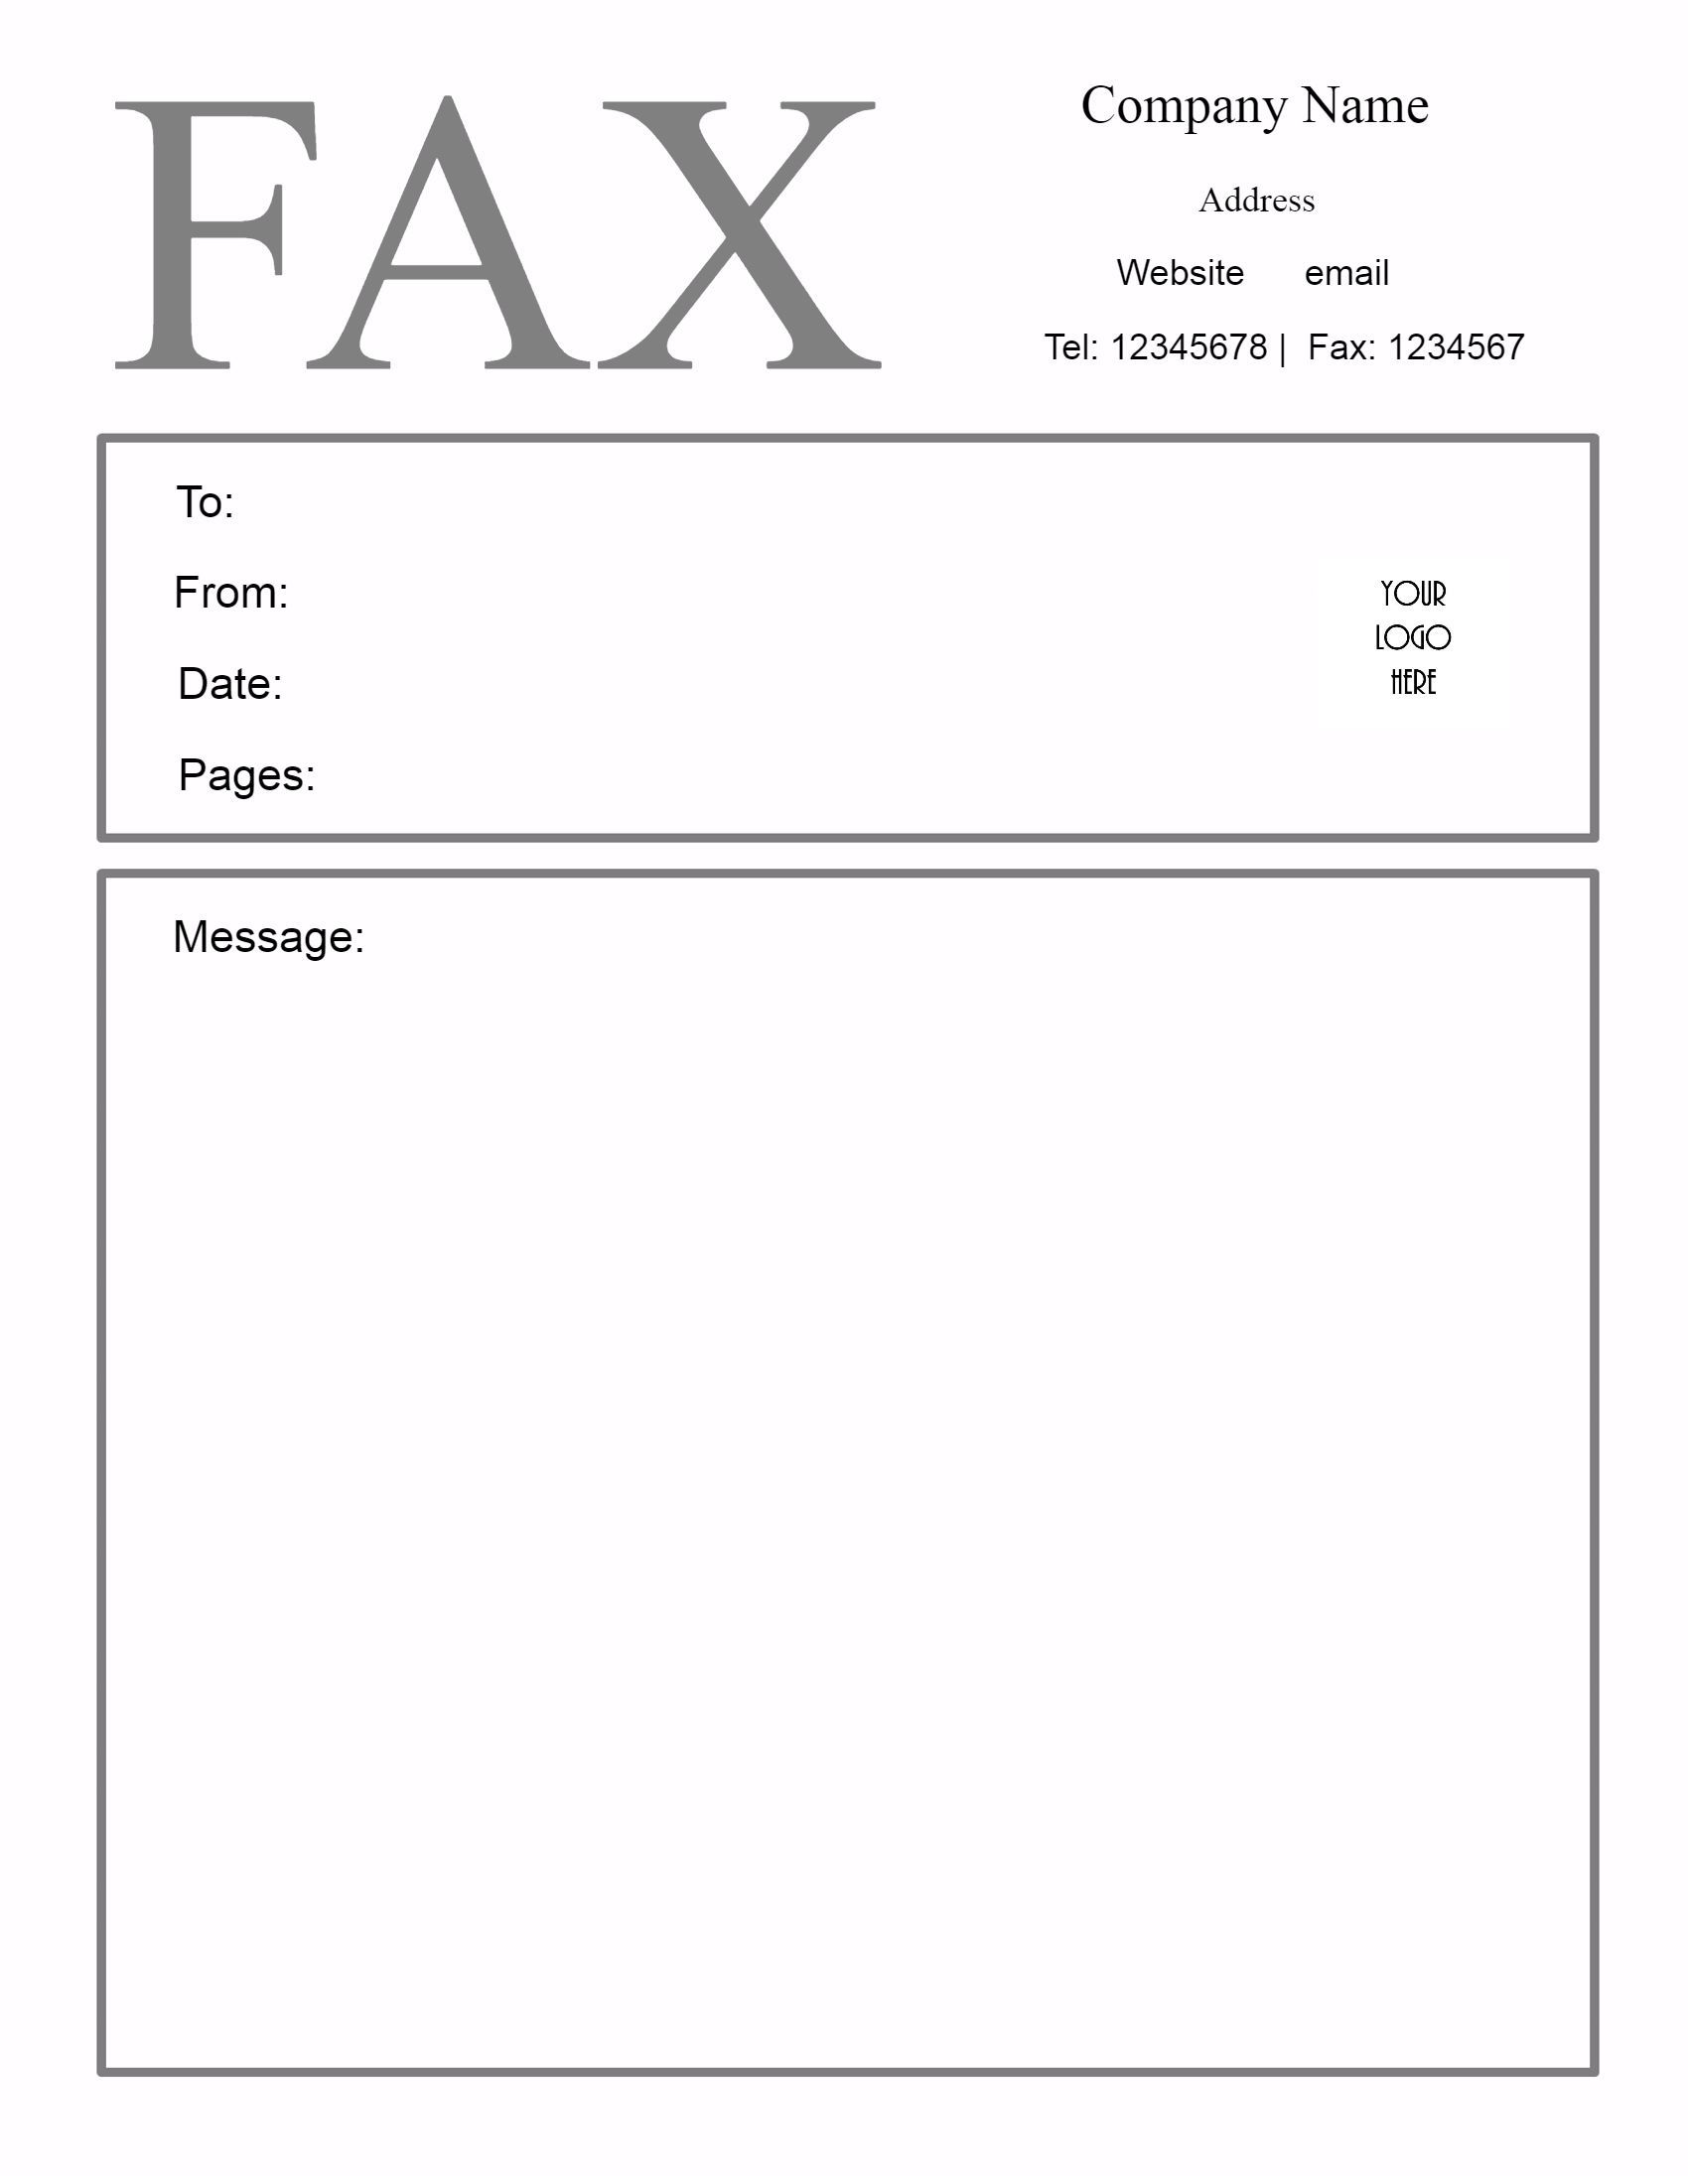 Free Fax Cover Sheet Template Customize Online Then Print Printable Fax Cover Letter Fax Cover Sheet Cover Sheet Template Cover Letter Template Sample of fax cover sheet